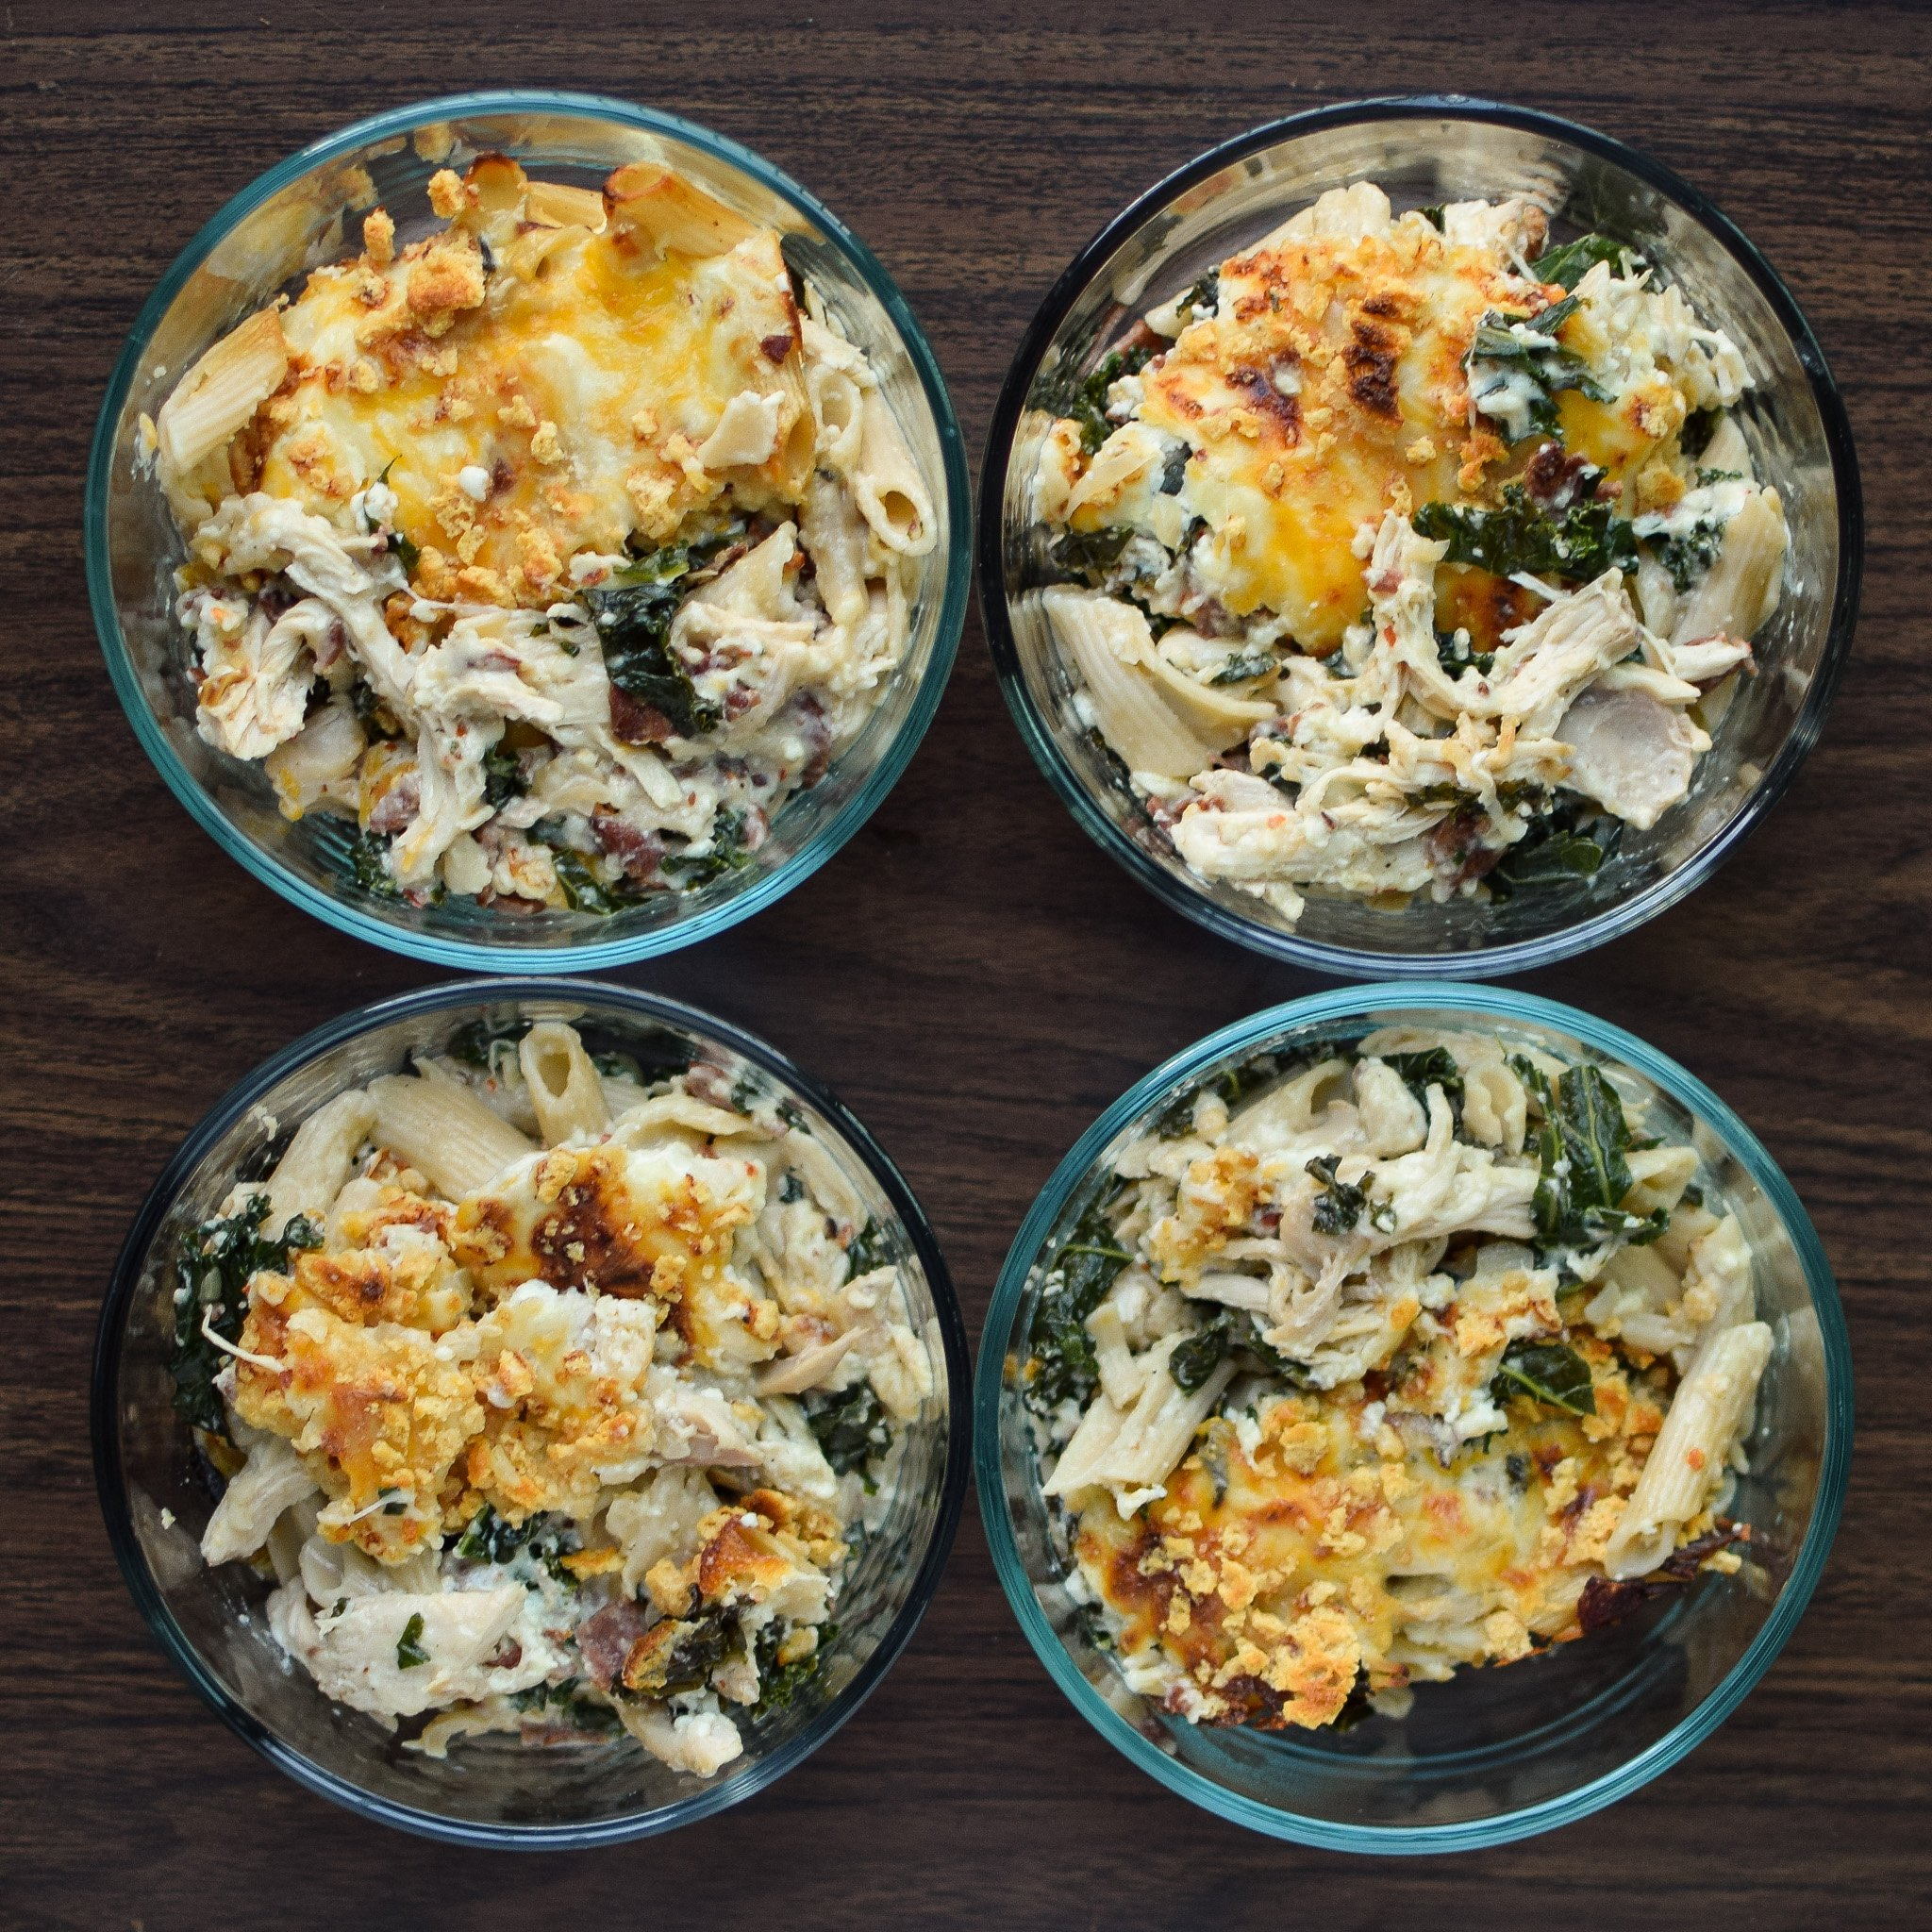 Cheesy Chicken Bacon Ranch Kale Casserole - A healthy and creamy combo of brown rice pasta, kale, chicken, greek yogurt and more! - ProjectMealPlan.com